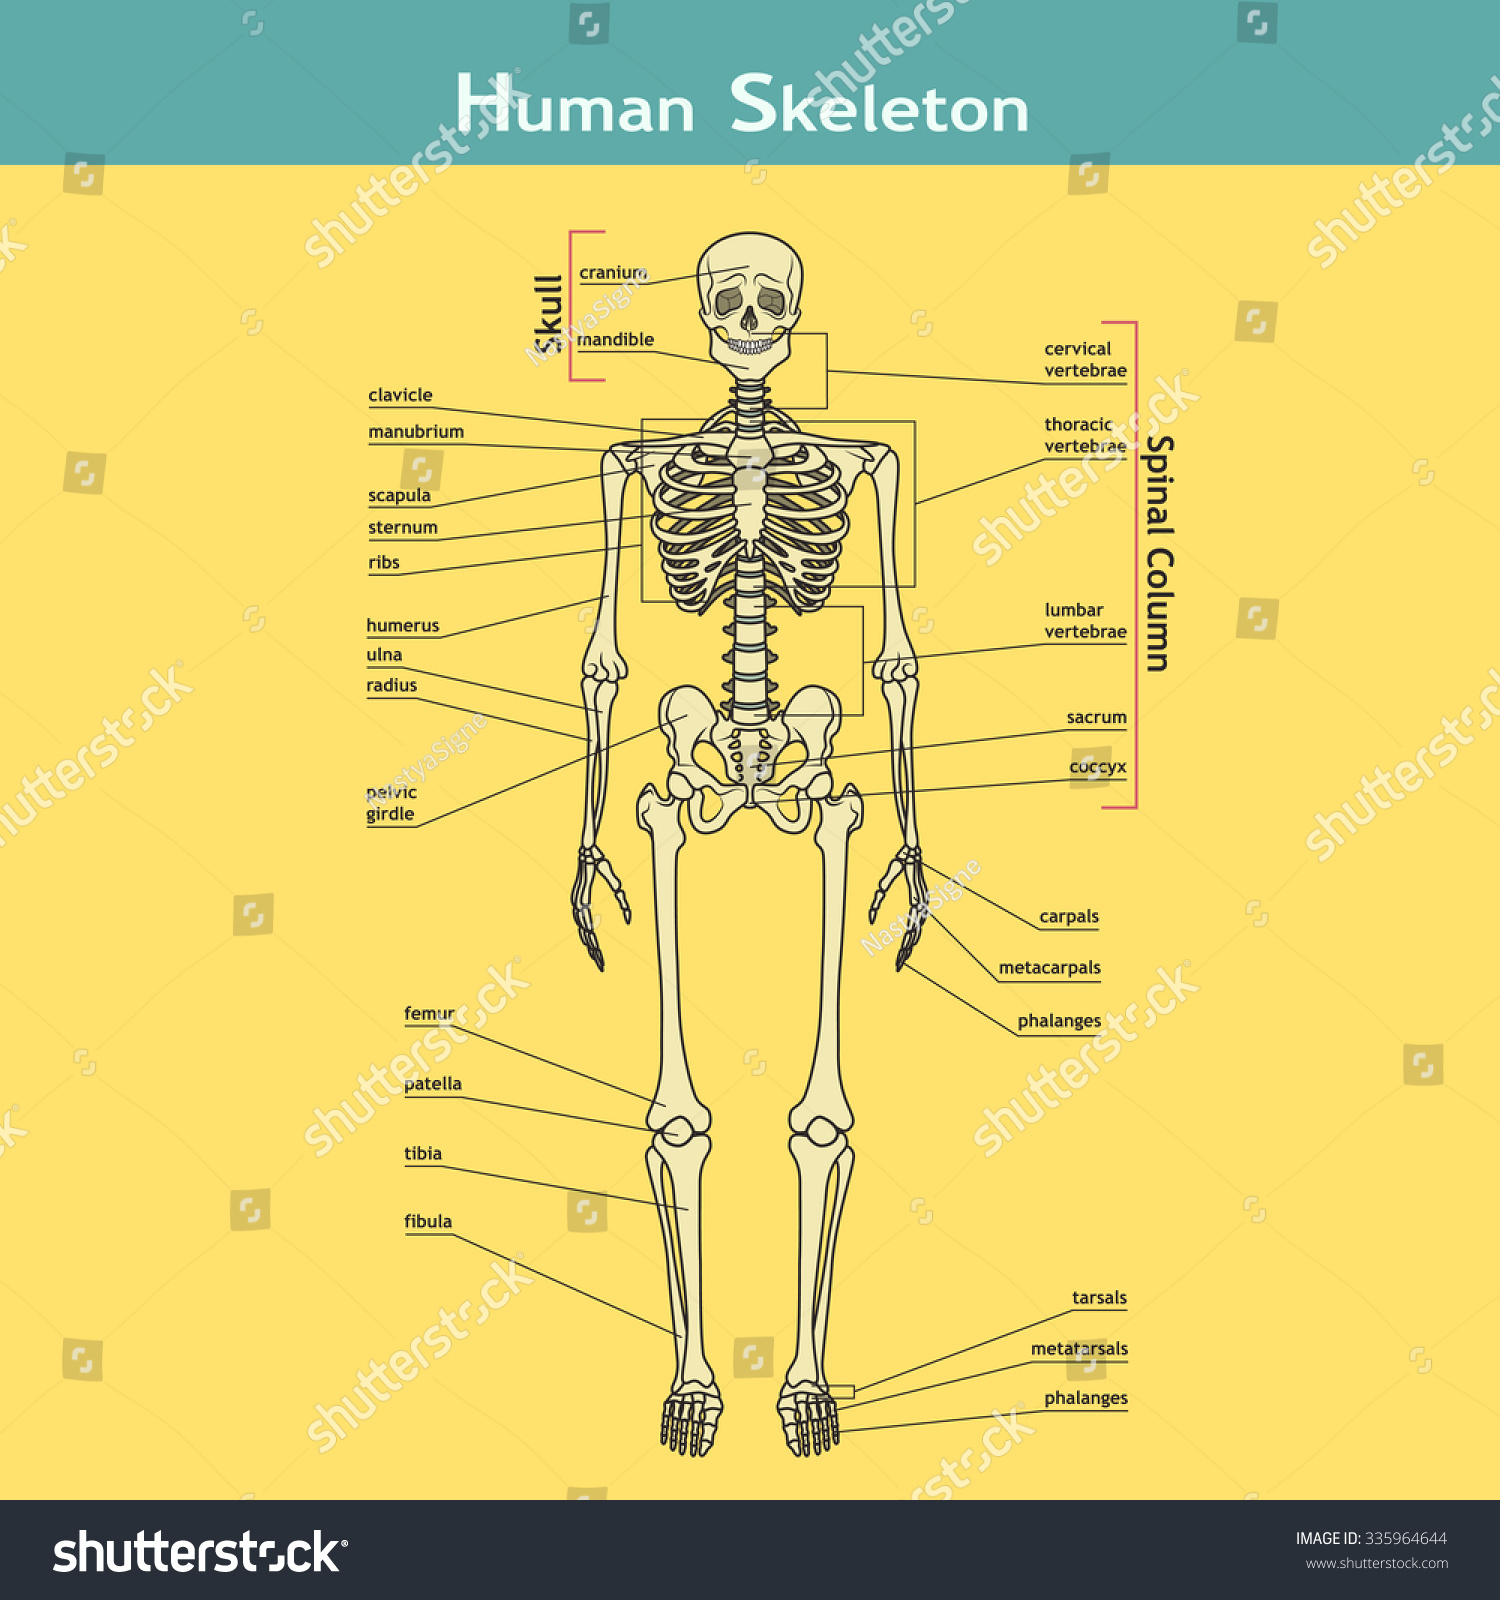 Illustration Skeletal System Labels Human Skeleton Stock Vector